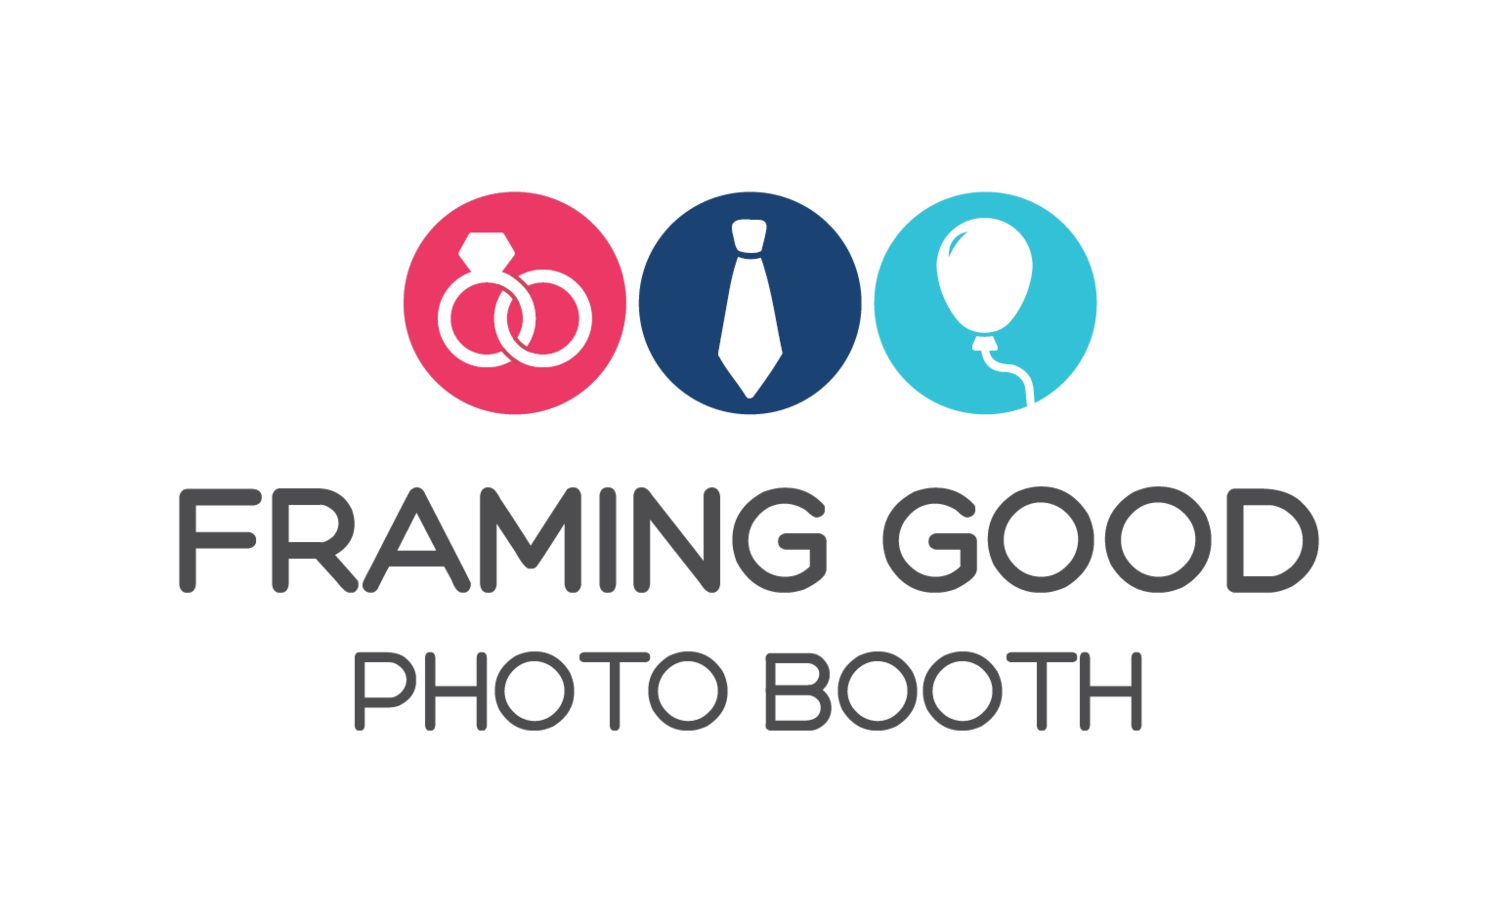 Framing Good Photo Booth